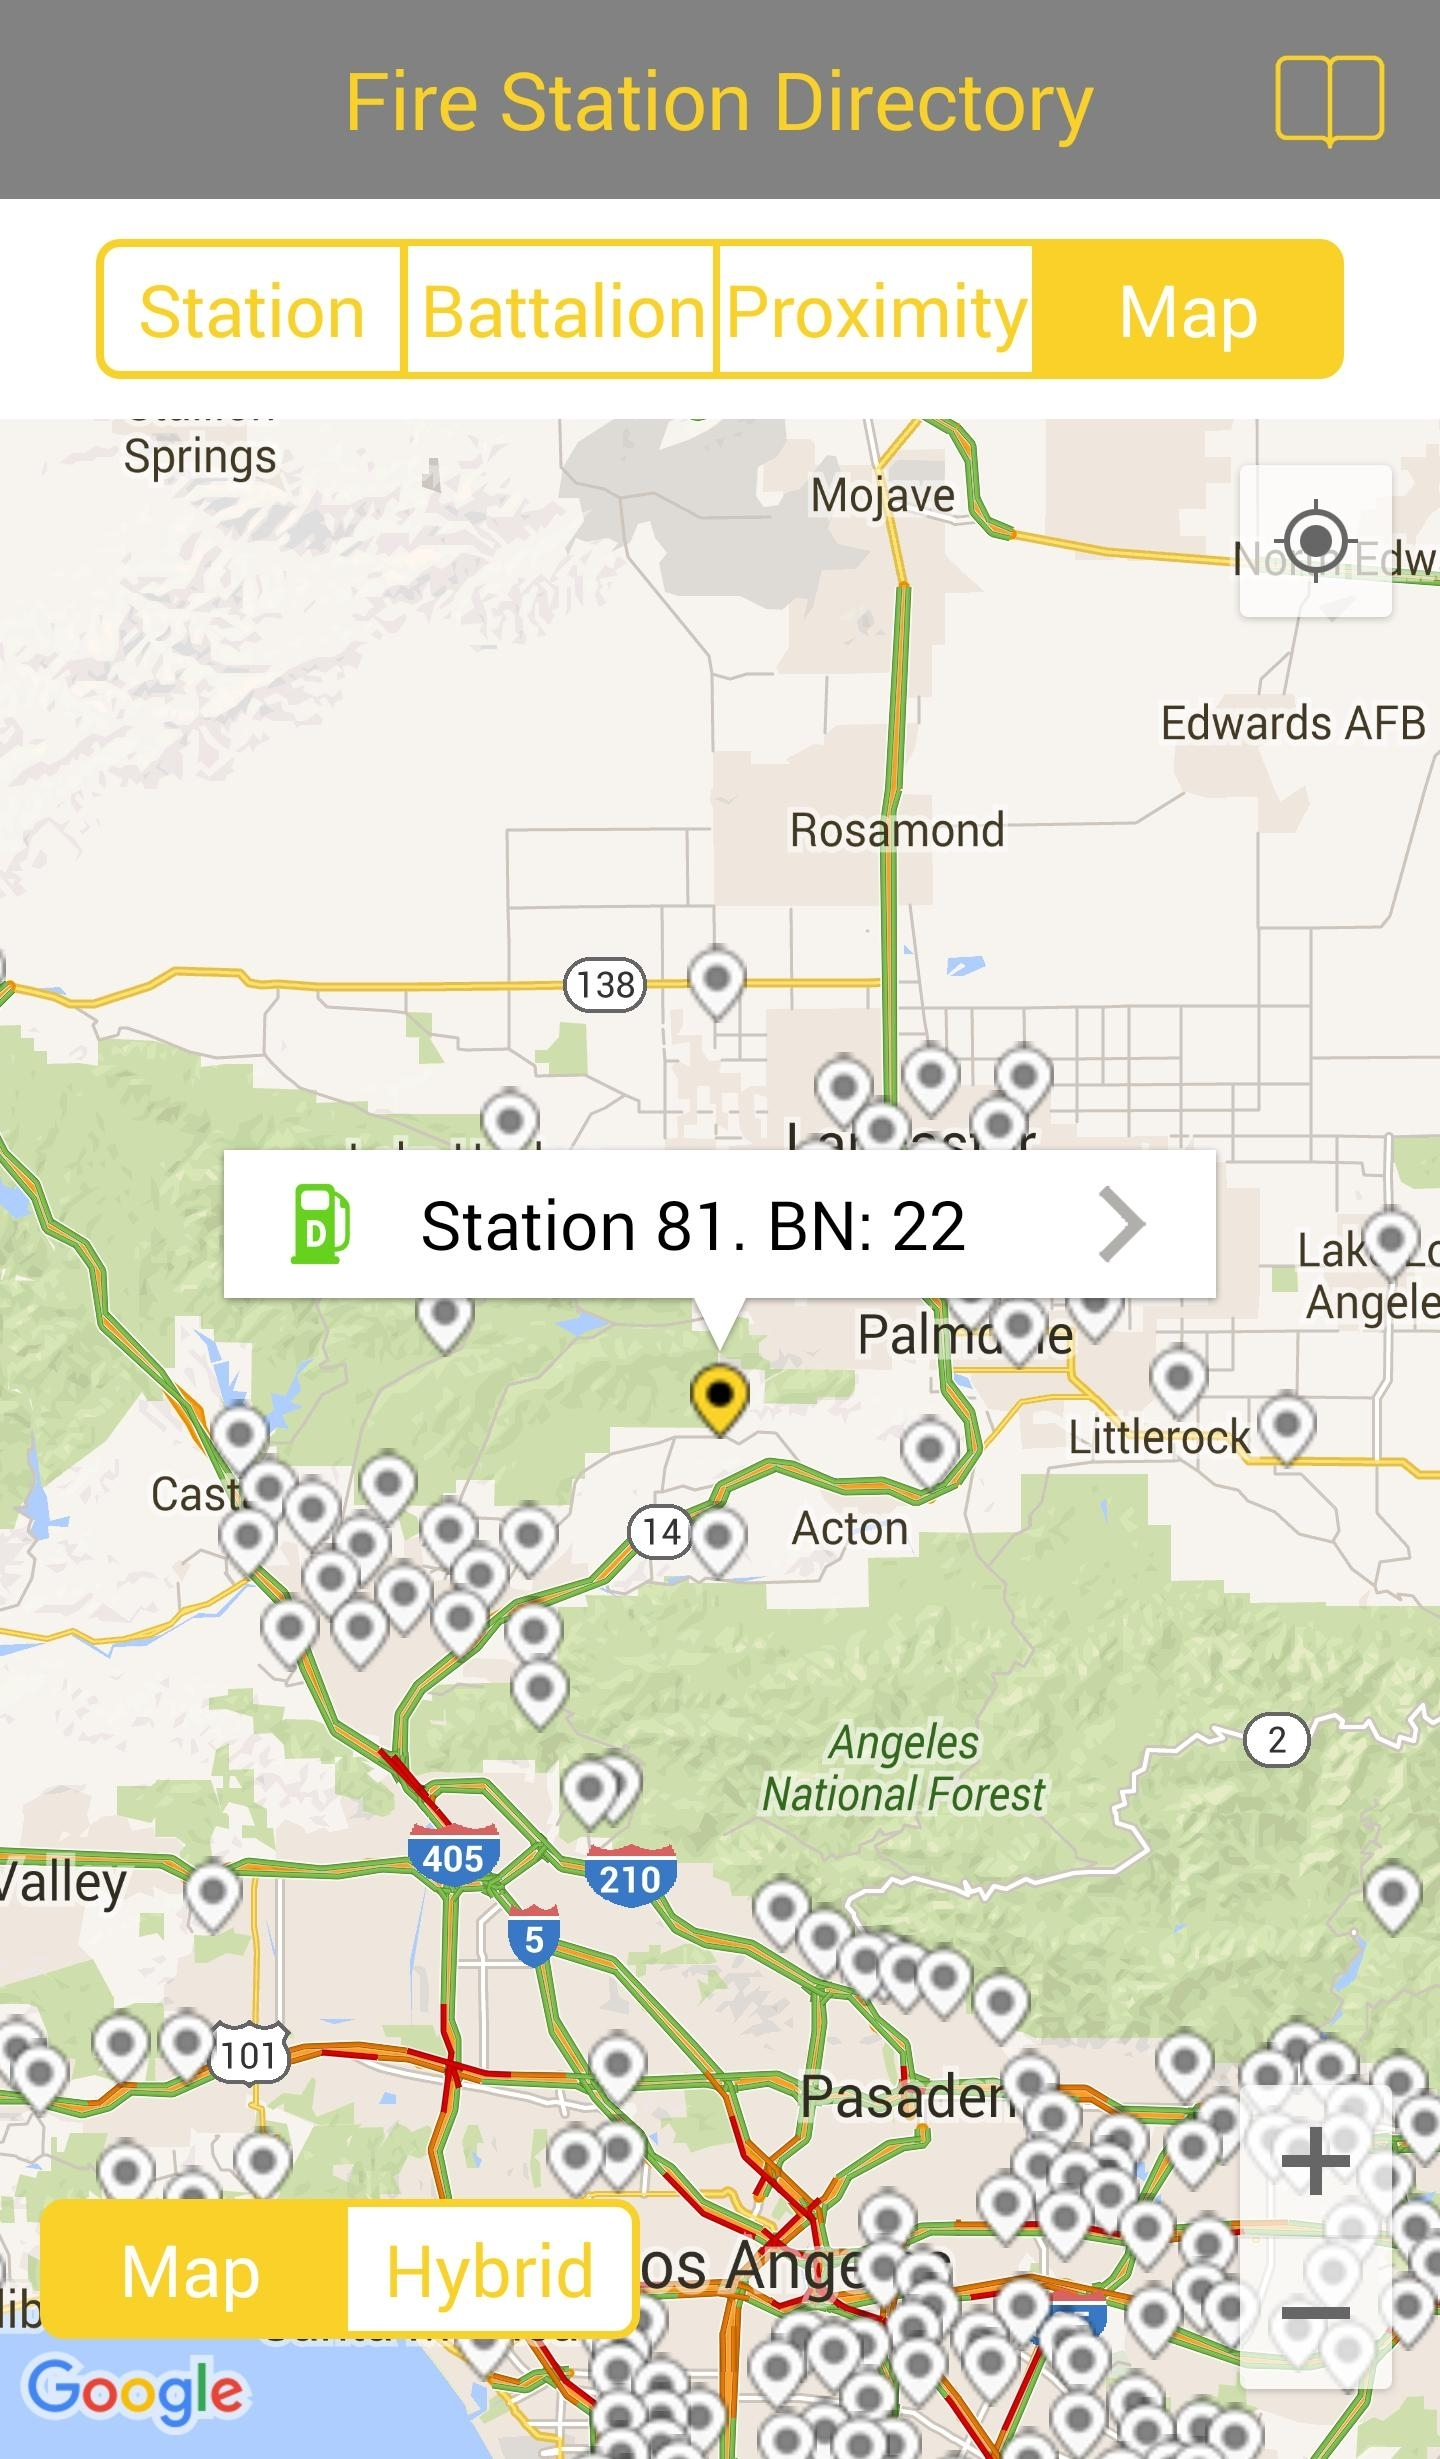 Lacofd Fire Station Directory For Android - Apk Download